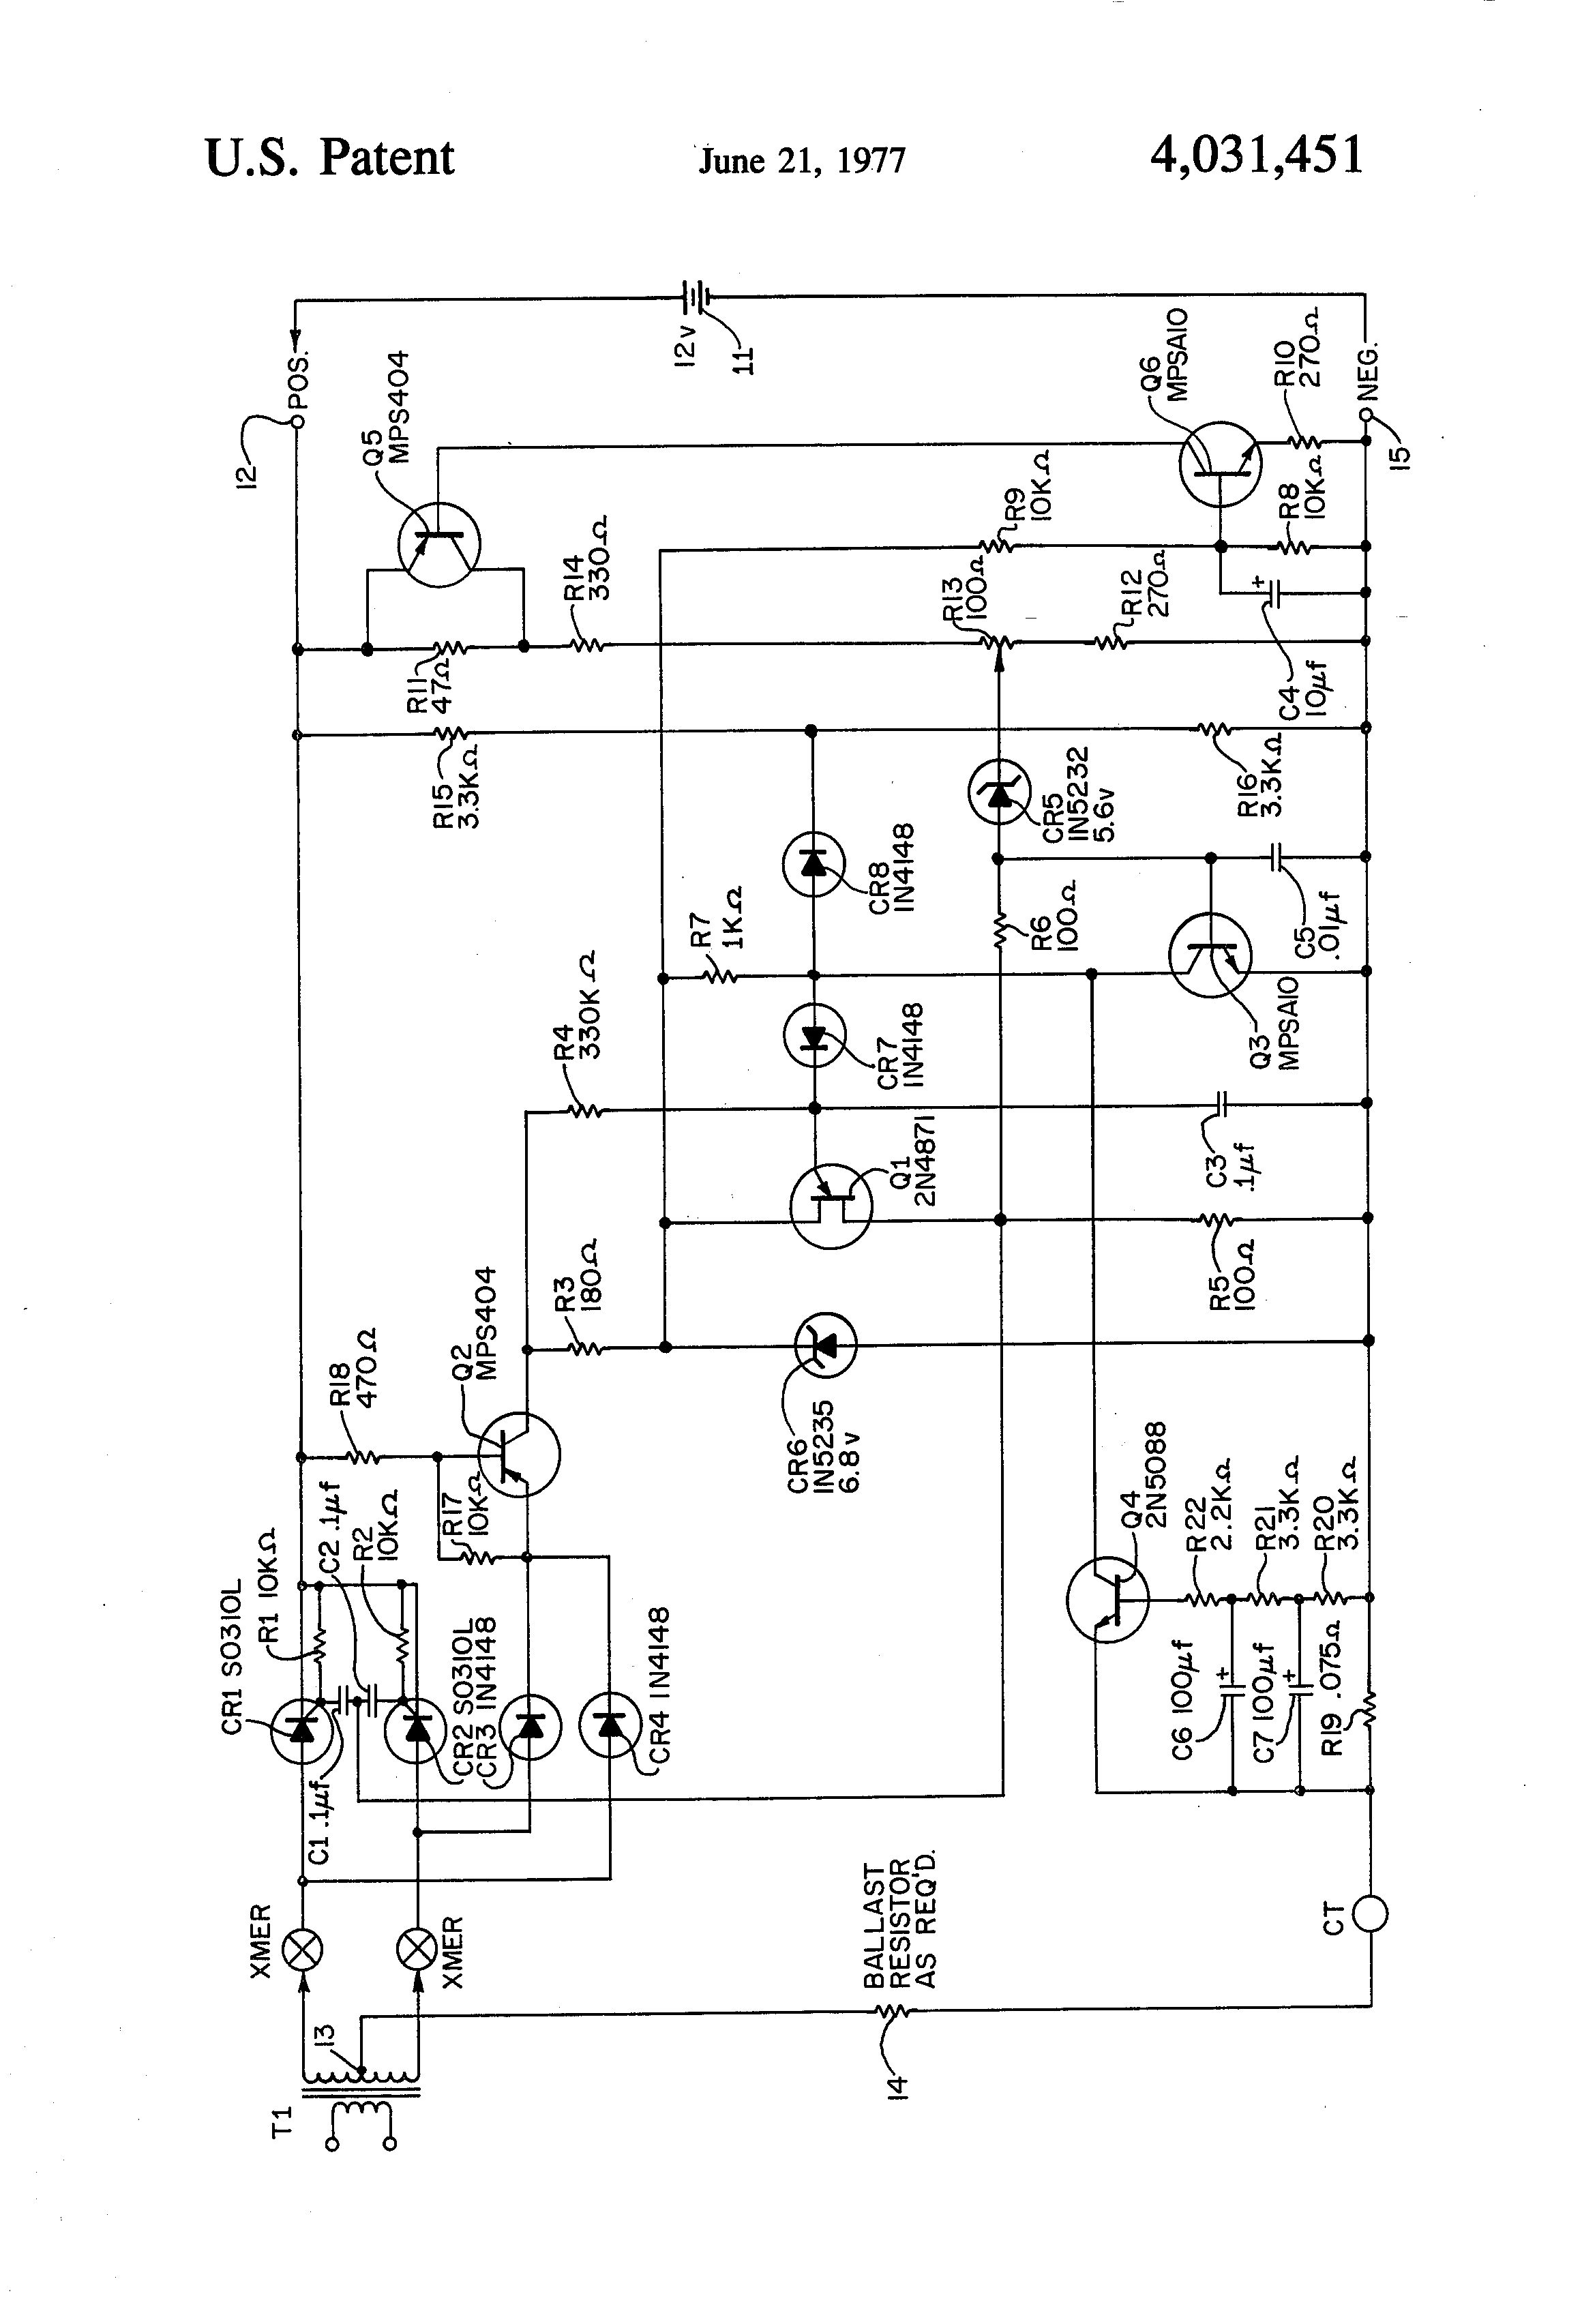 Brevet Us4031451 Charging Circuit With Scrs Triggered By Pedestal Four Components A Silicon Controlled Rectifier Or Scr Zener Diode Patent Drawing